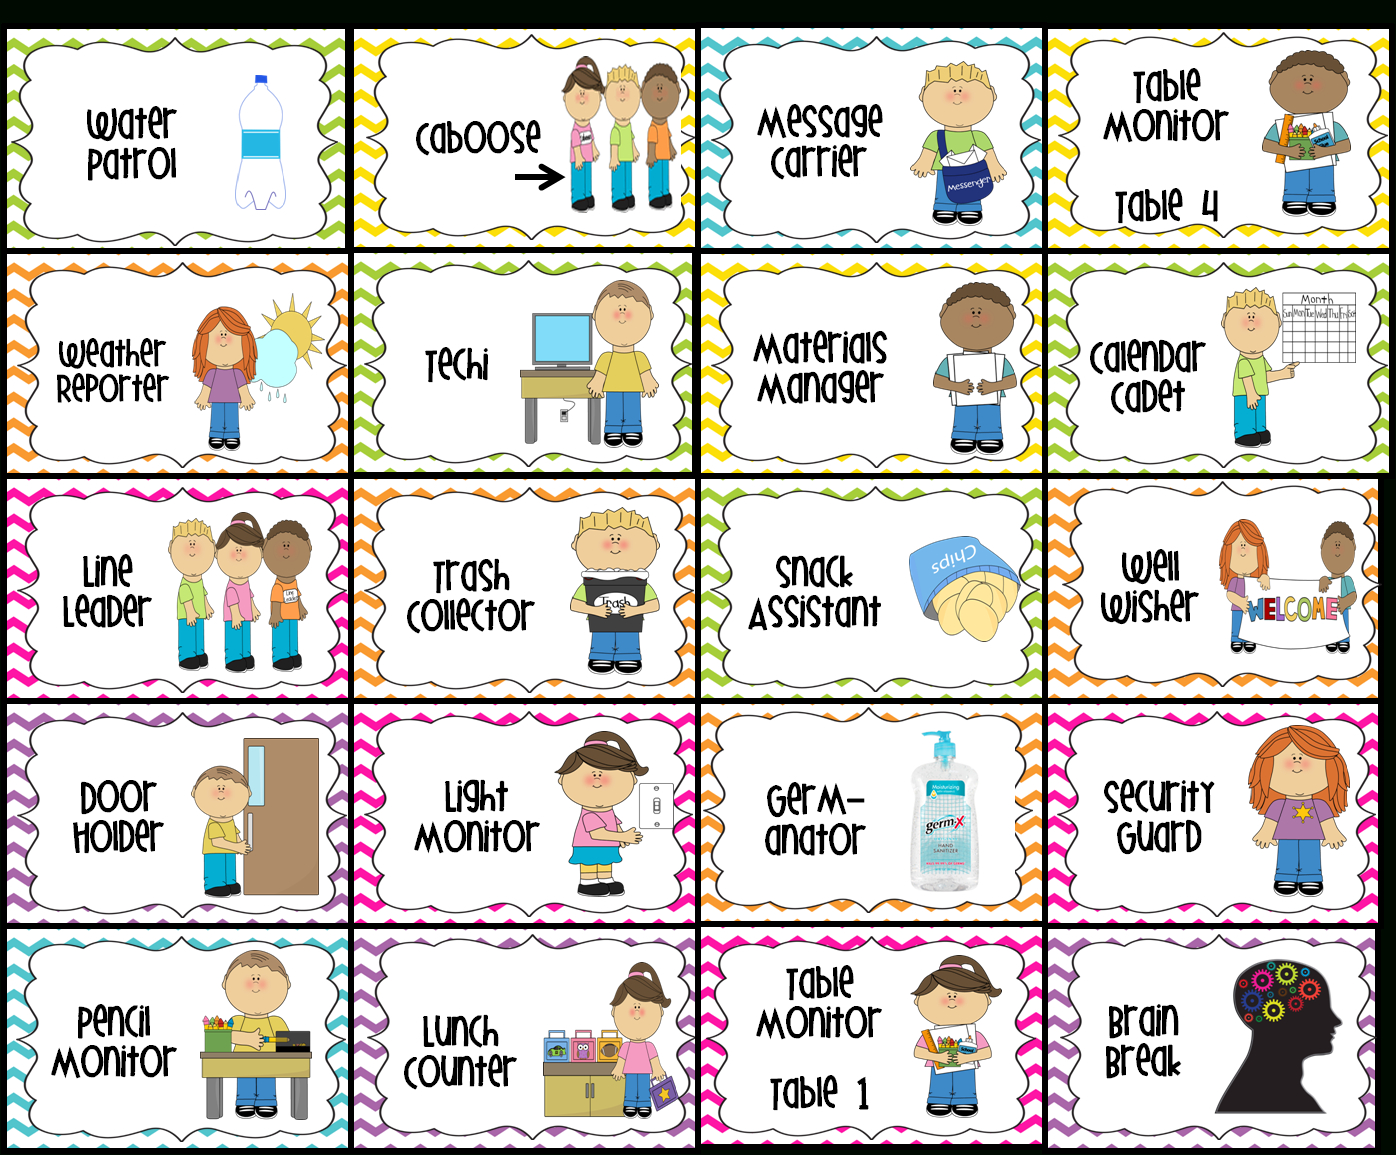 Classroom Jobs Printable | Water Patrol (2), Caboose, Message - Classroom Helper Chart Free Printables